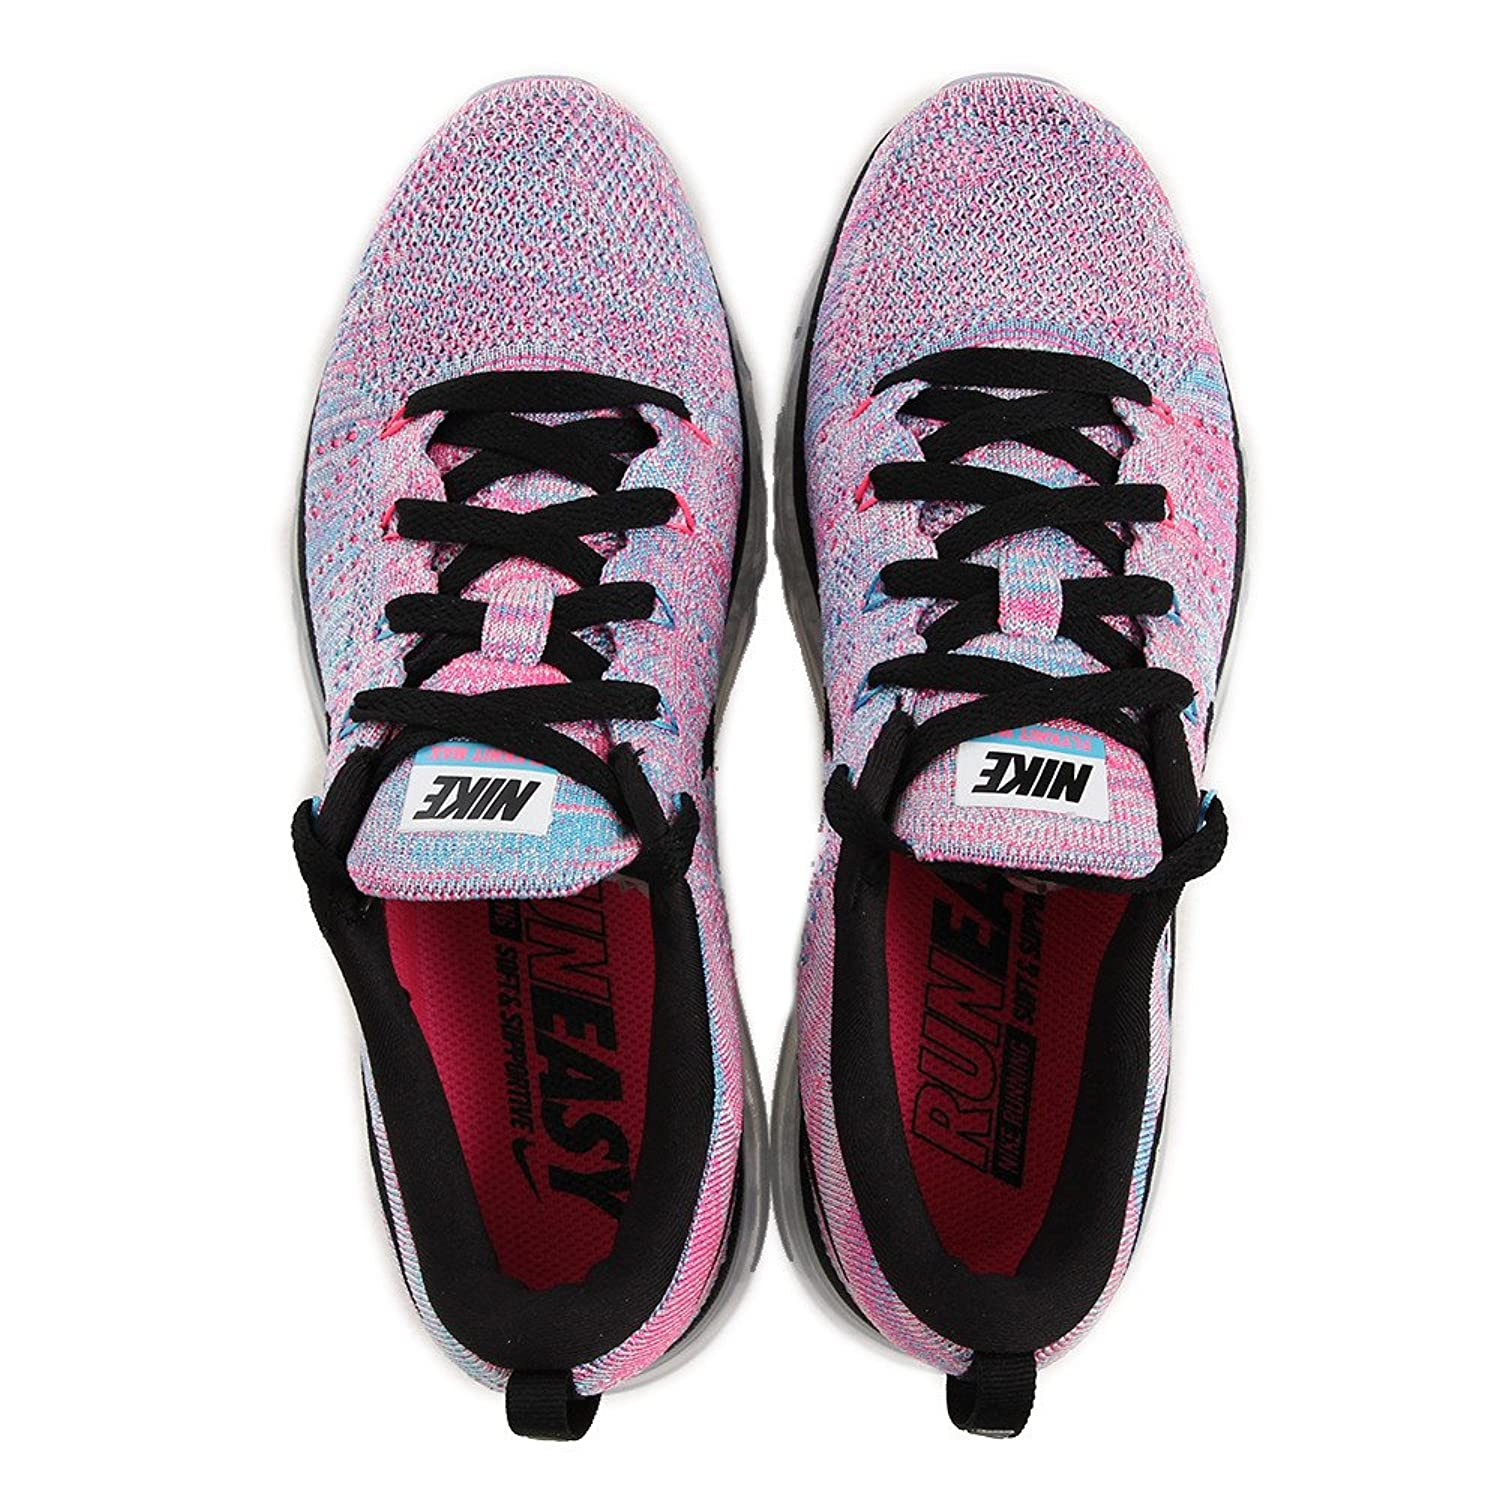 Nike Chaussures Running Femmes Taille 10 EfaojYCOM